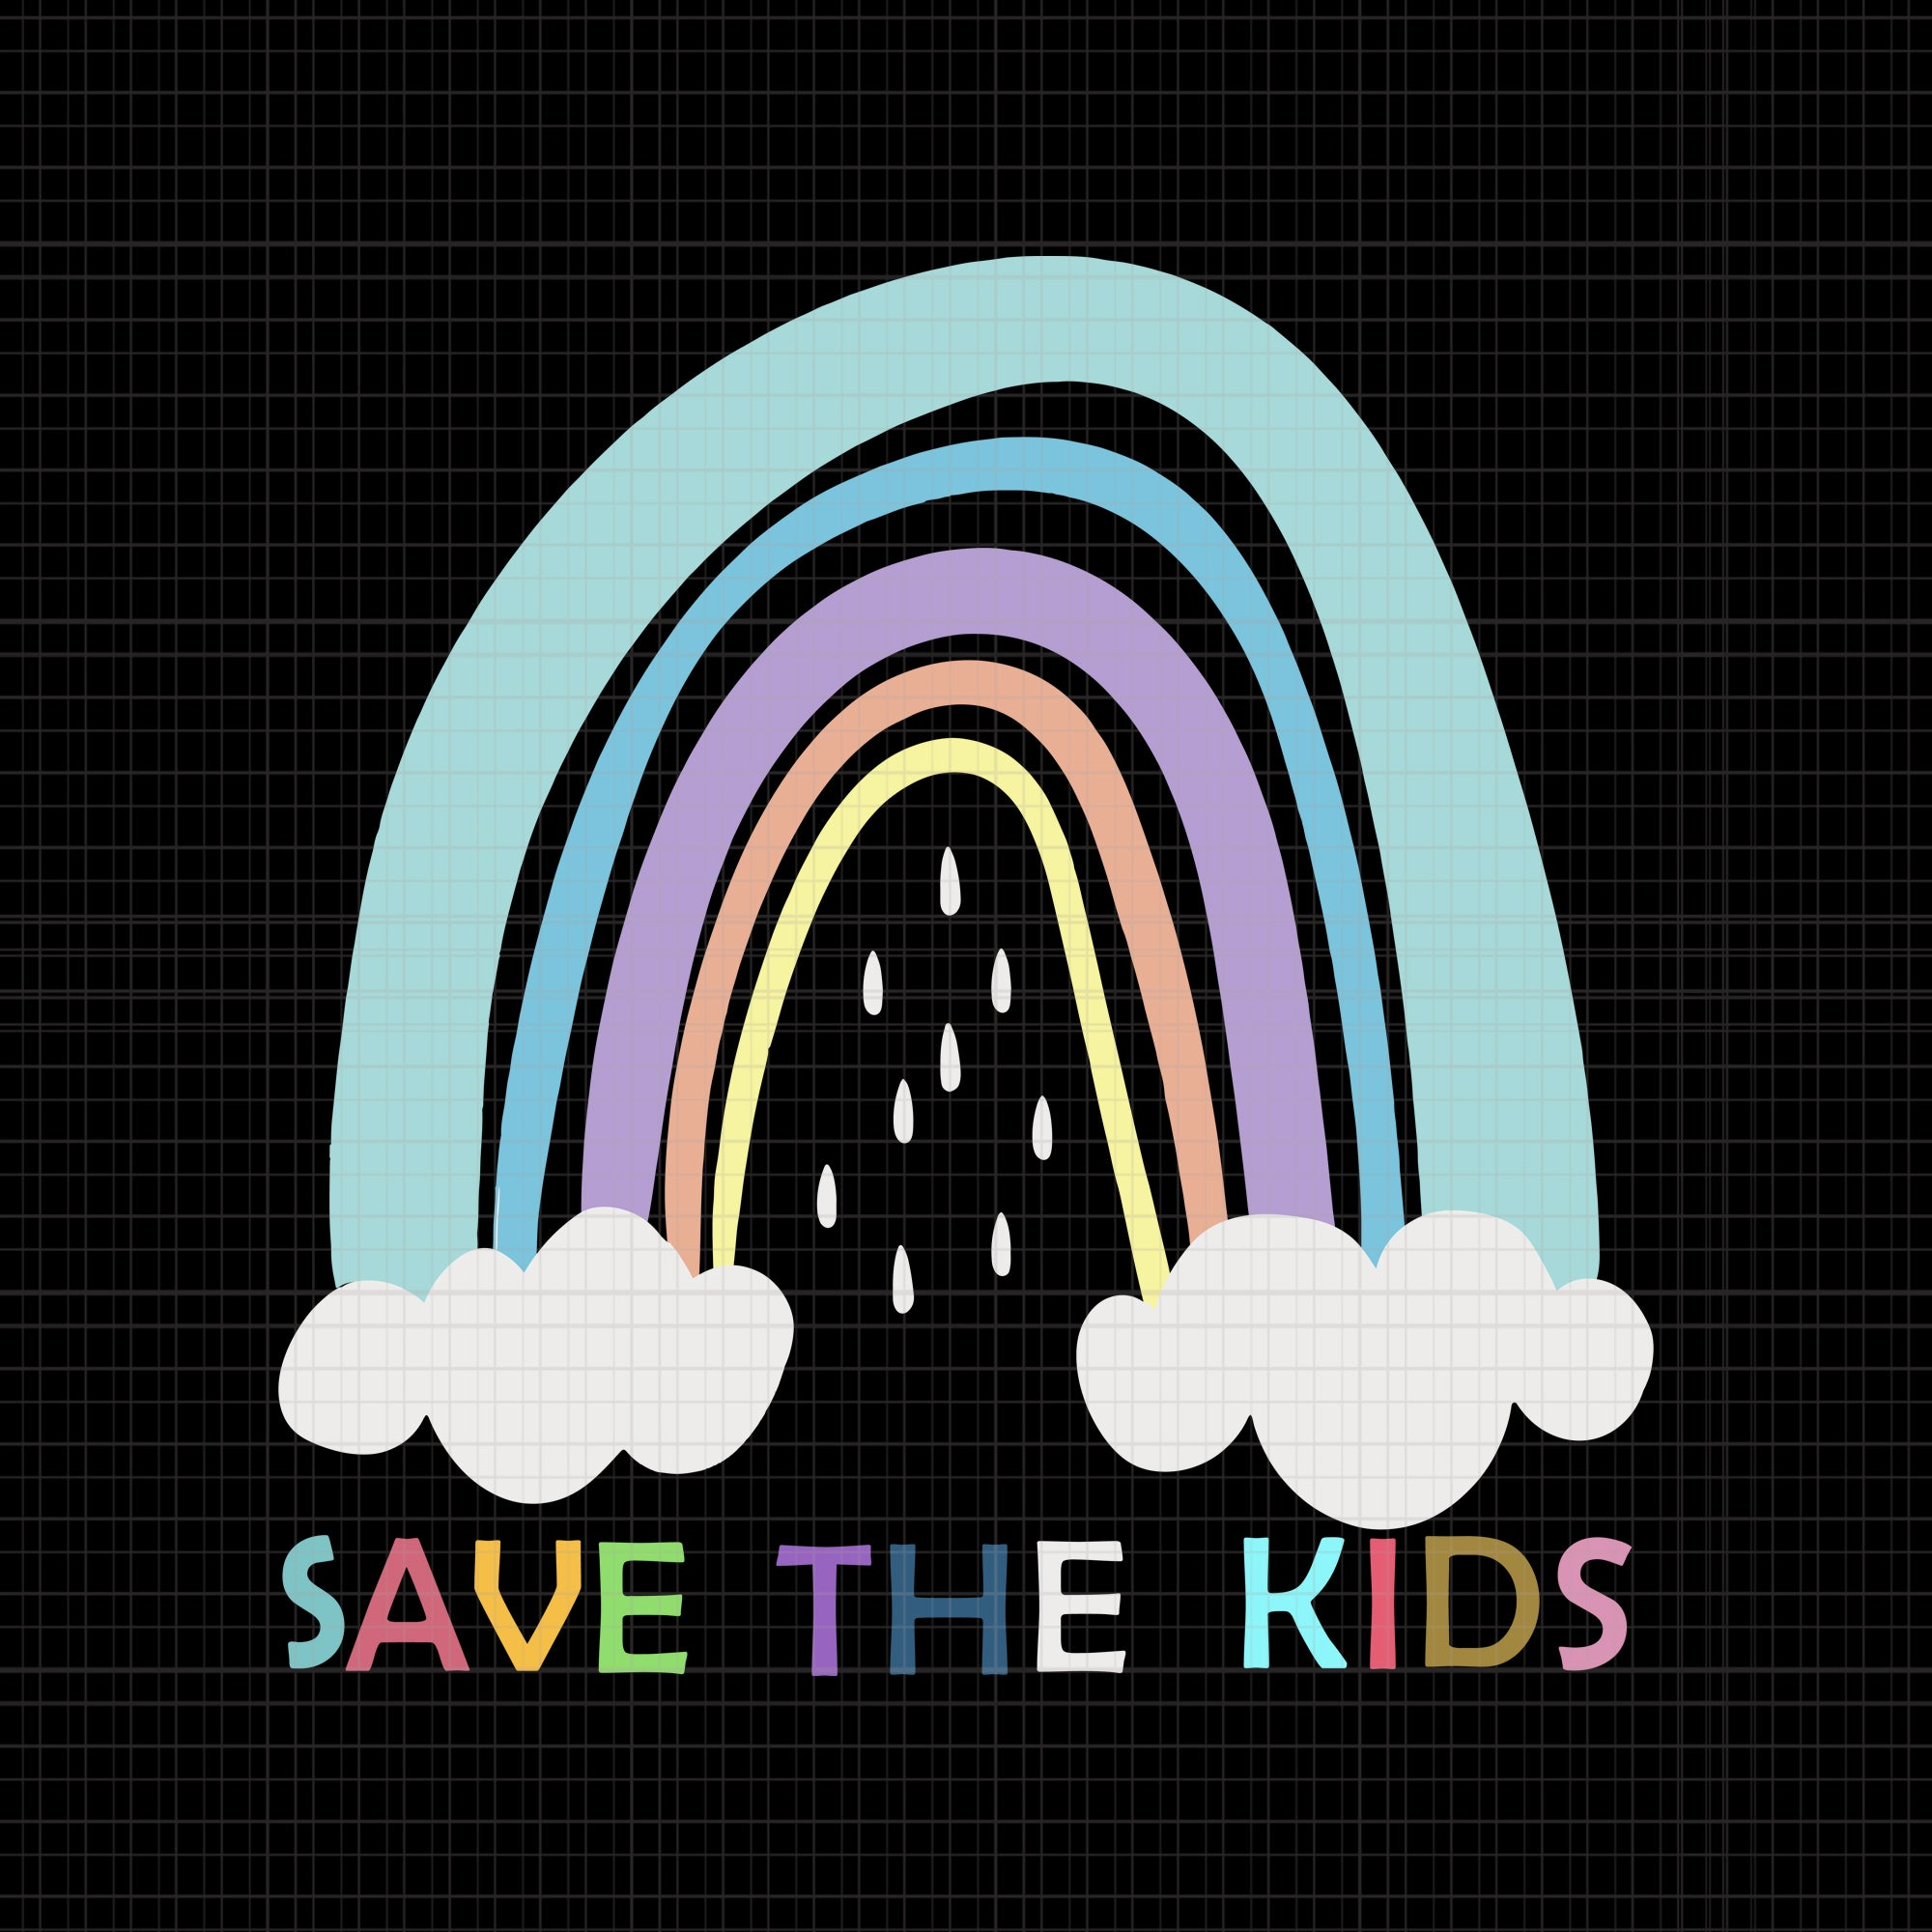 save the kids svg, save the kids png, save the kids vector, save the kids design